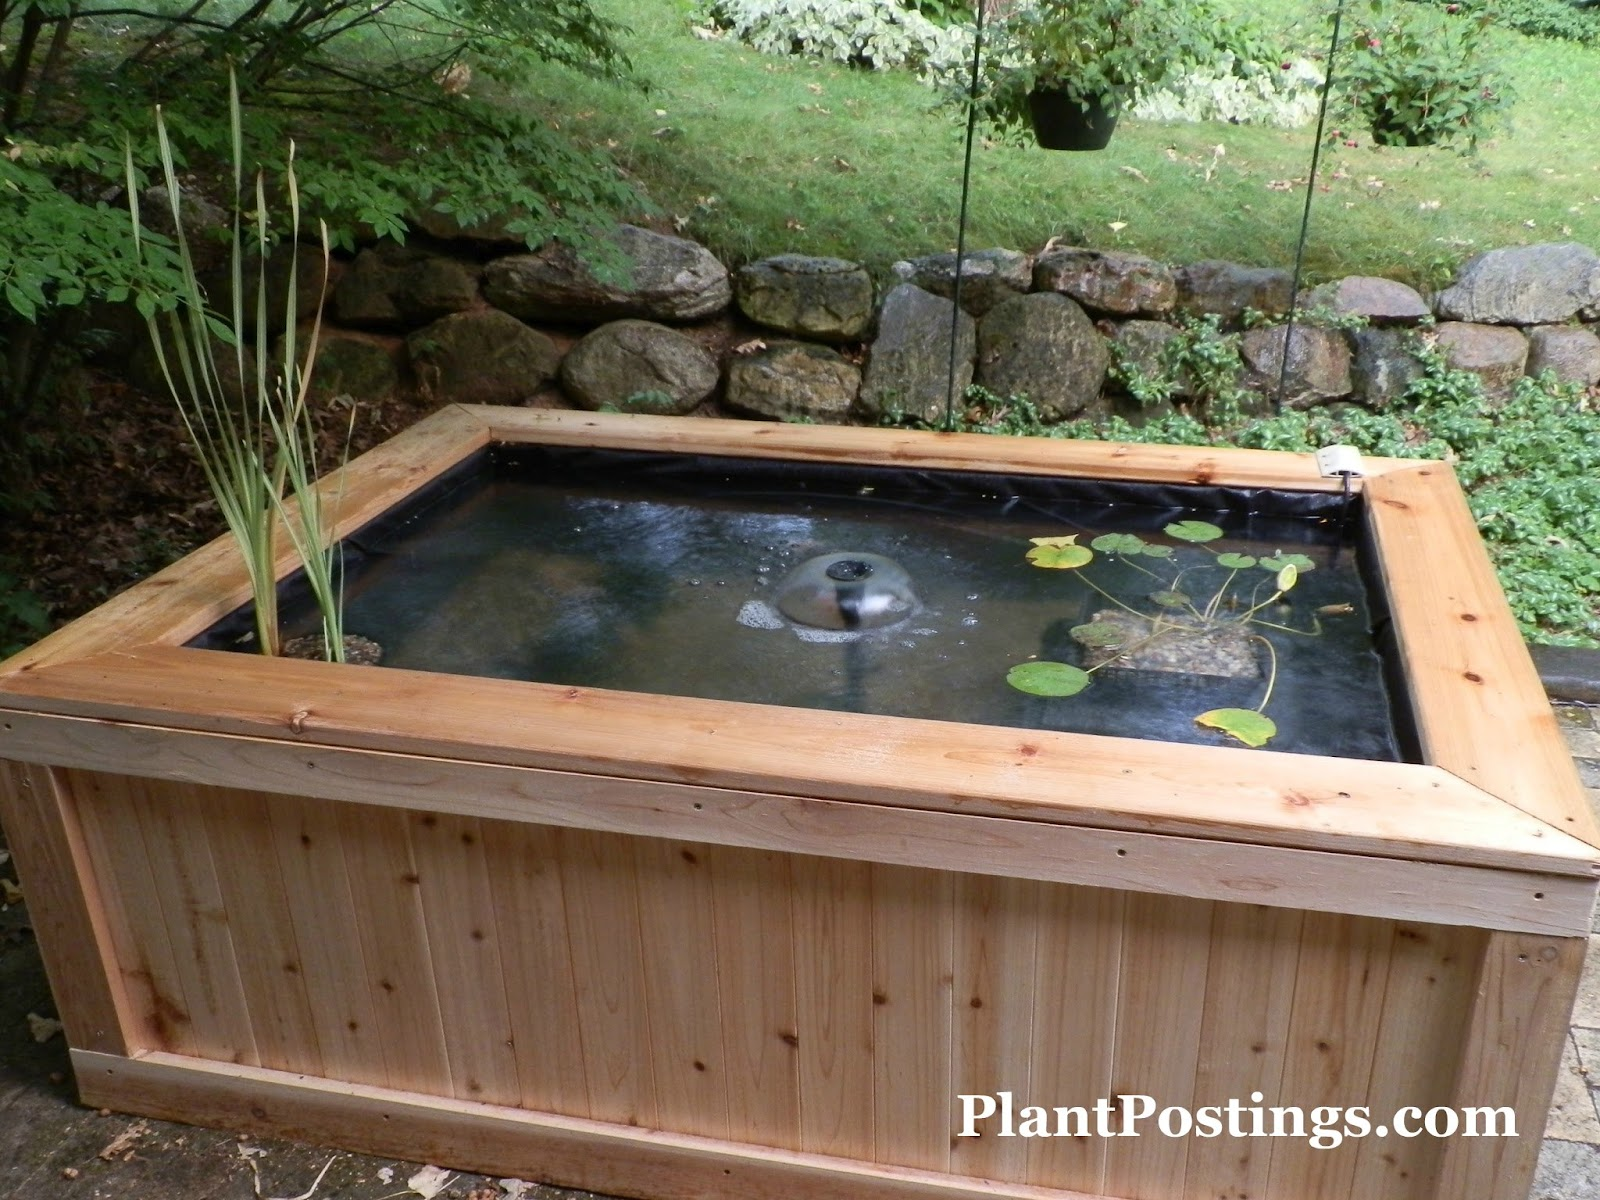 Plantpostings how to make an above ground pond for Above ground fish pond designs